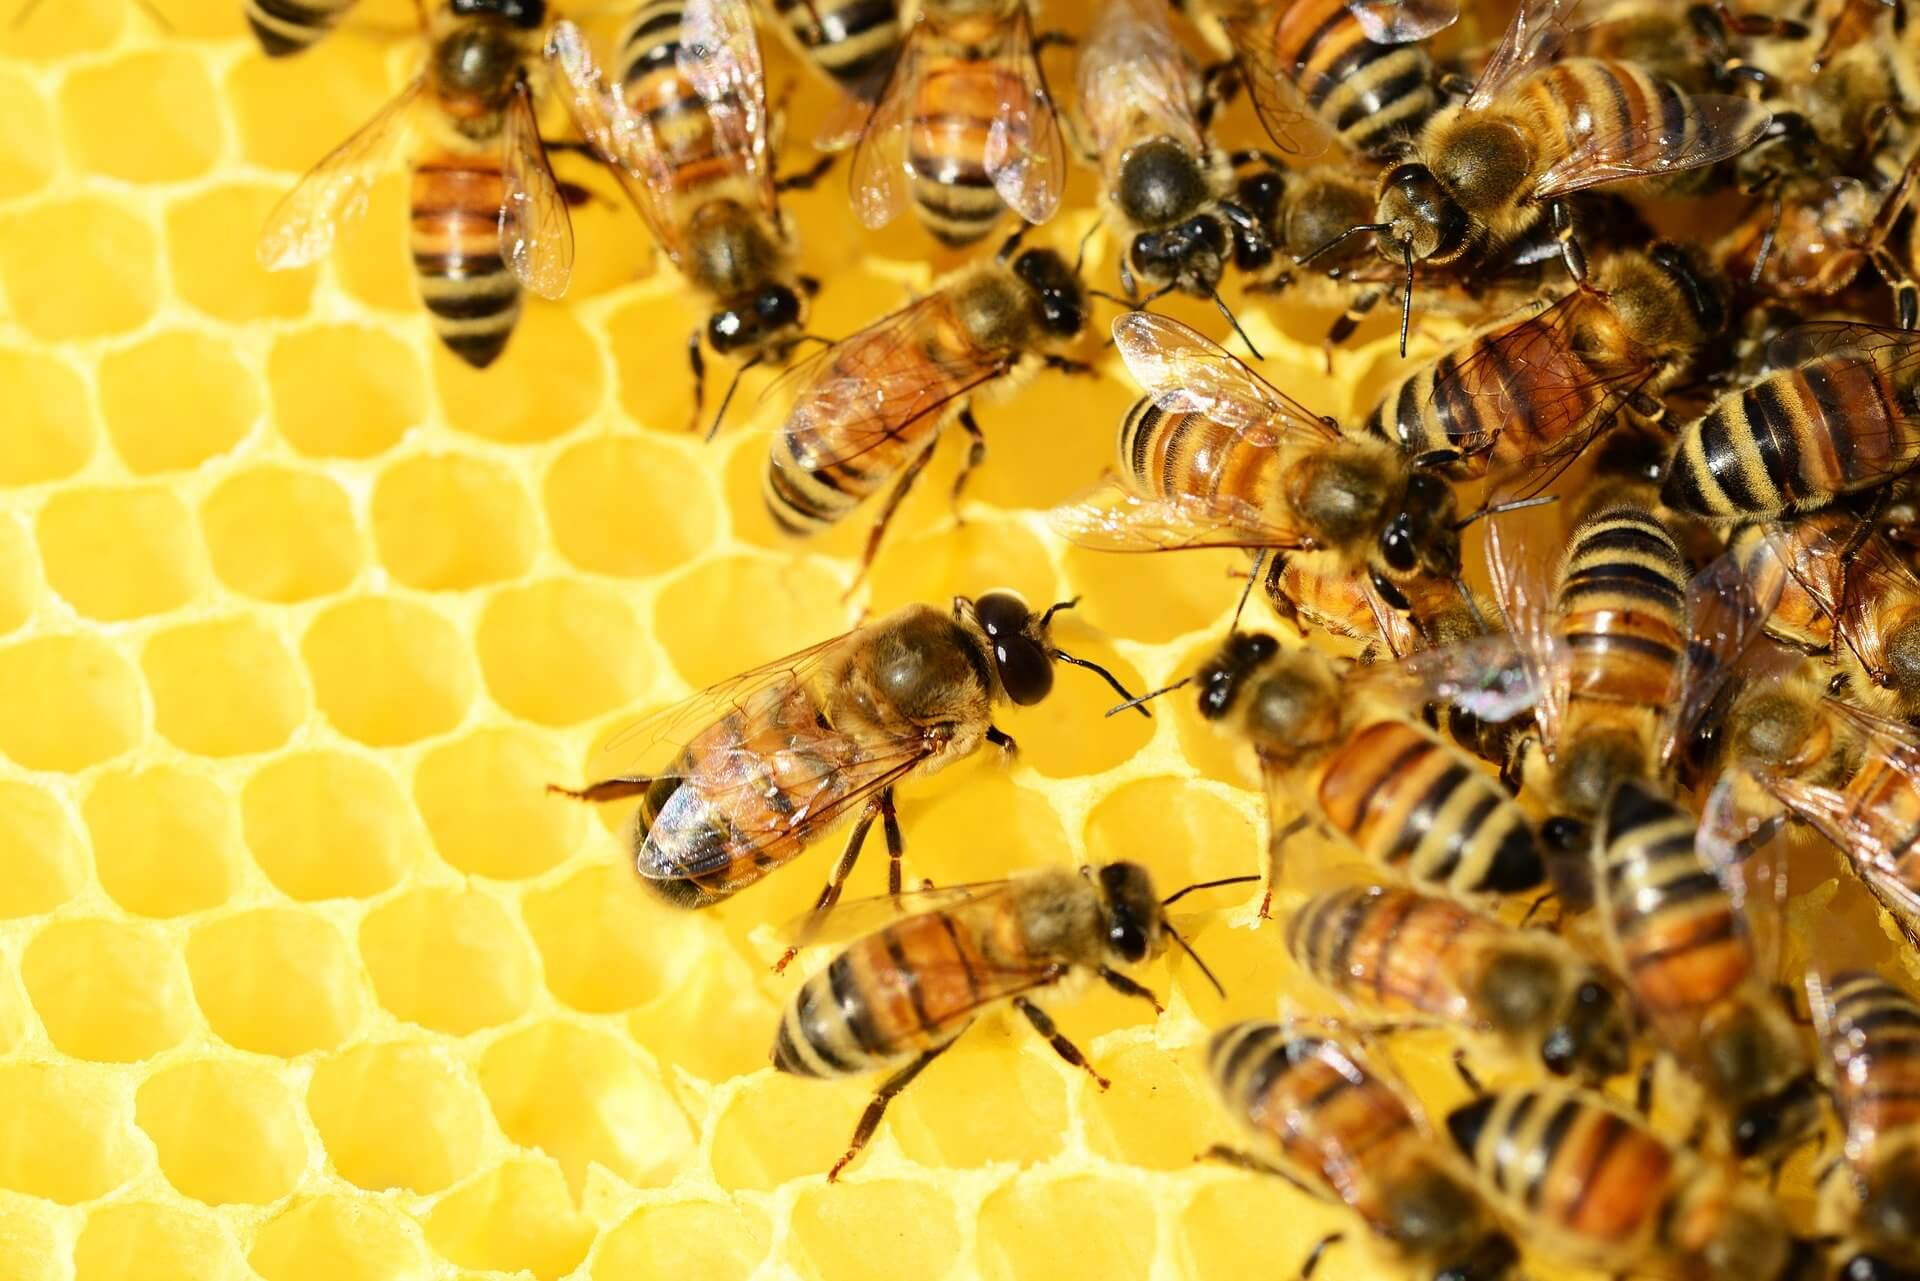 May 20th is World Bee Day